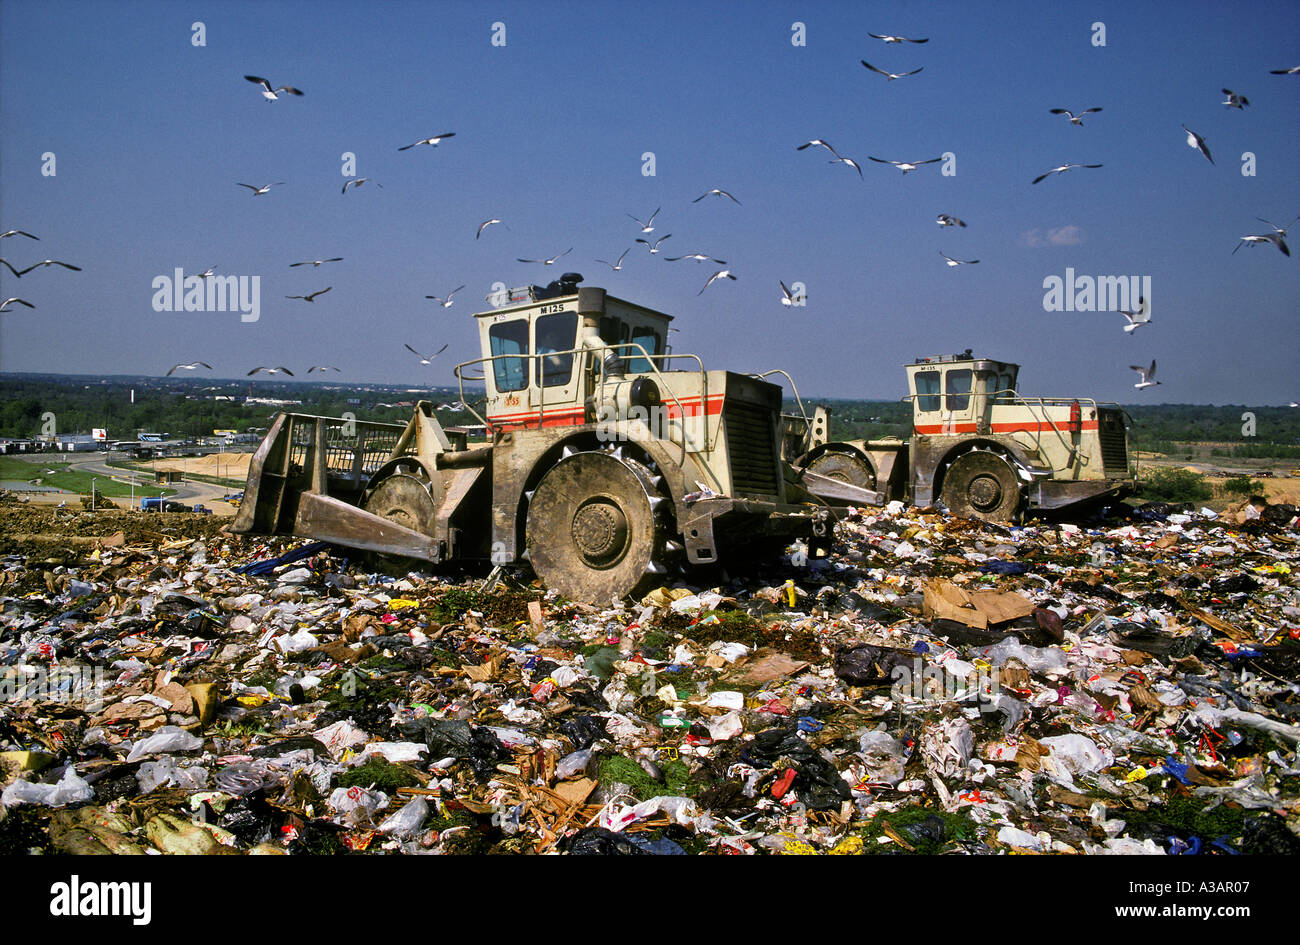 Sheeps Feet Dozers Spread the Refuse on Landfill PA - Stock Image